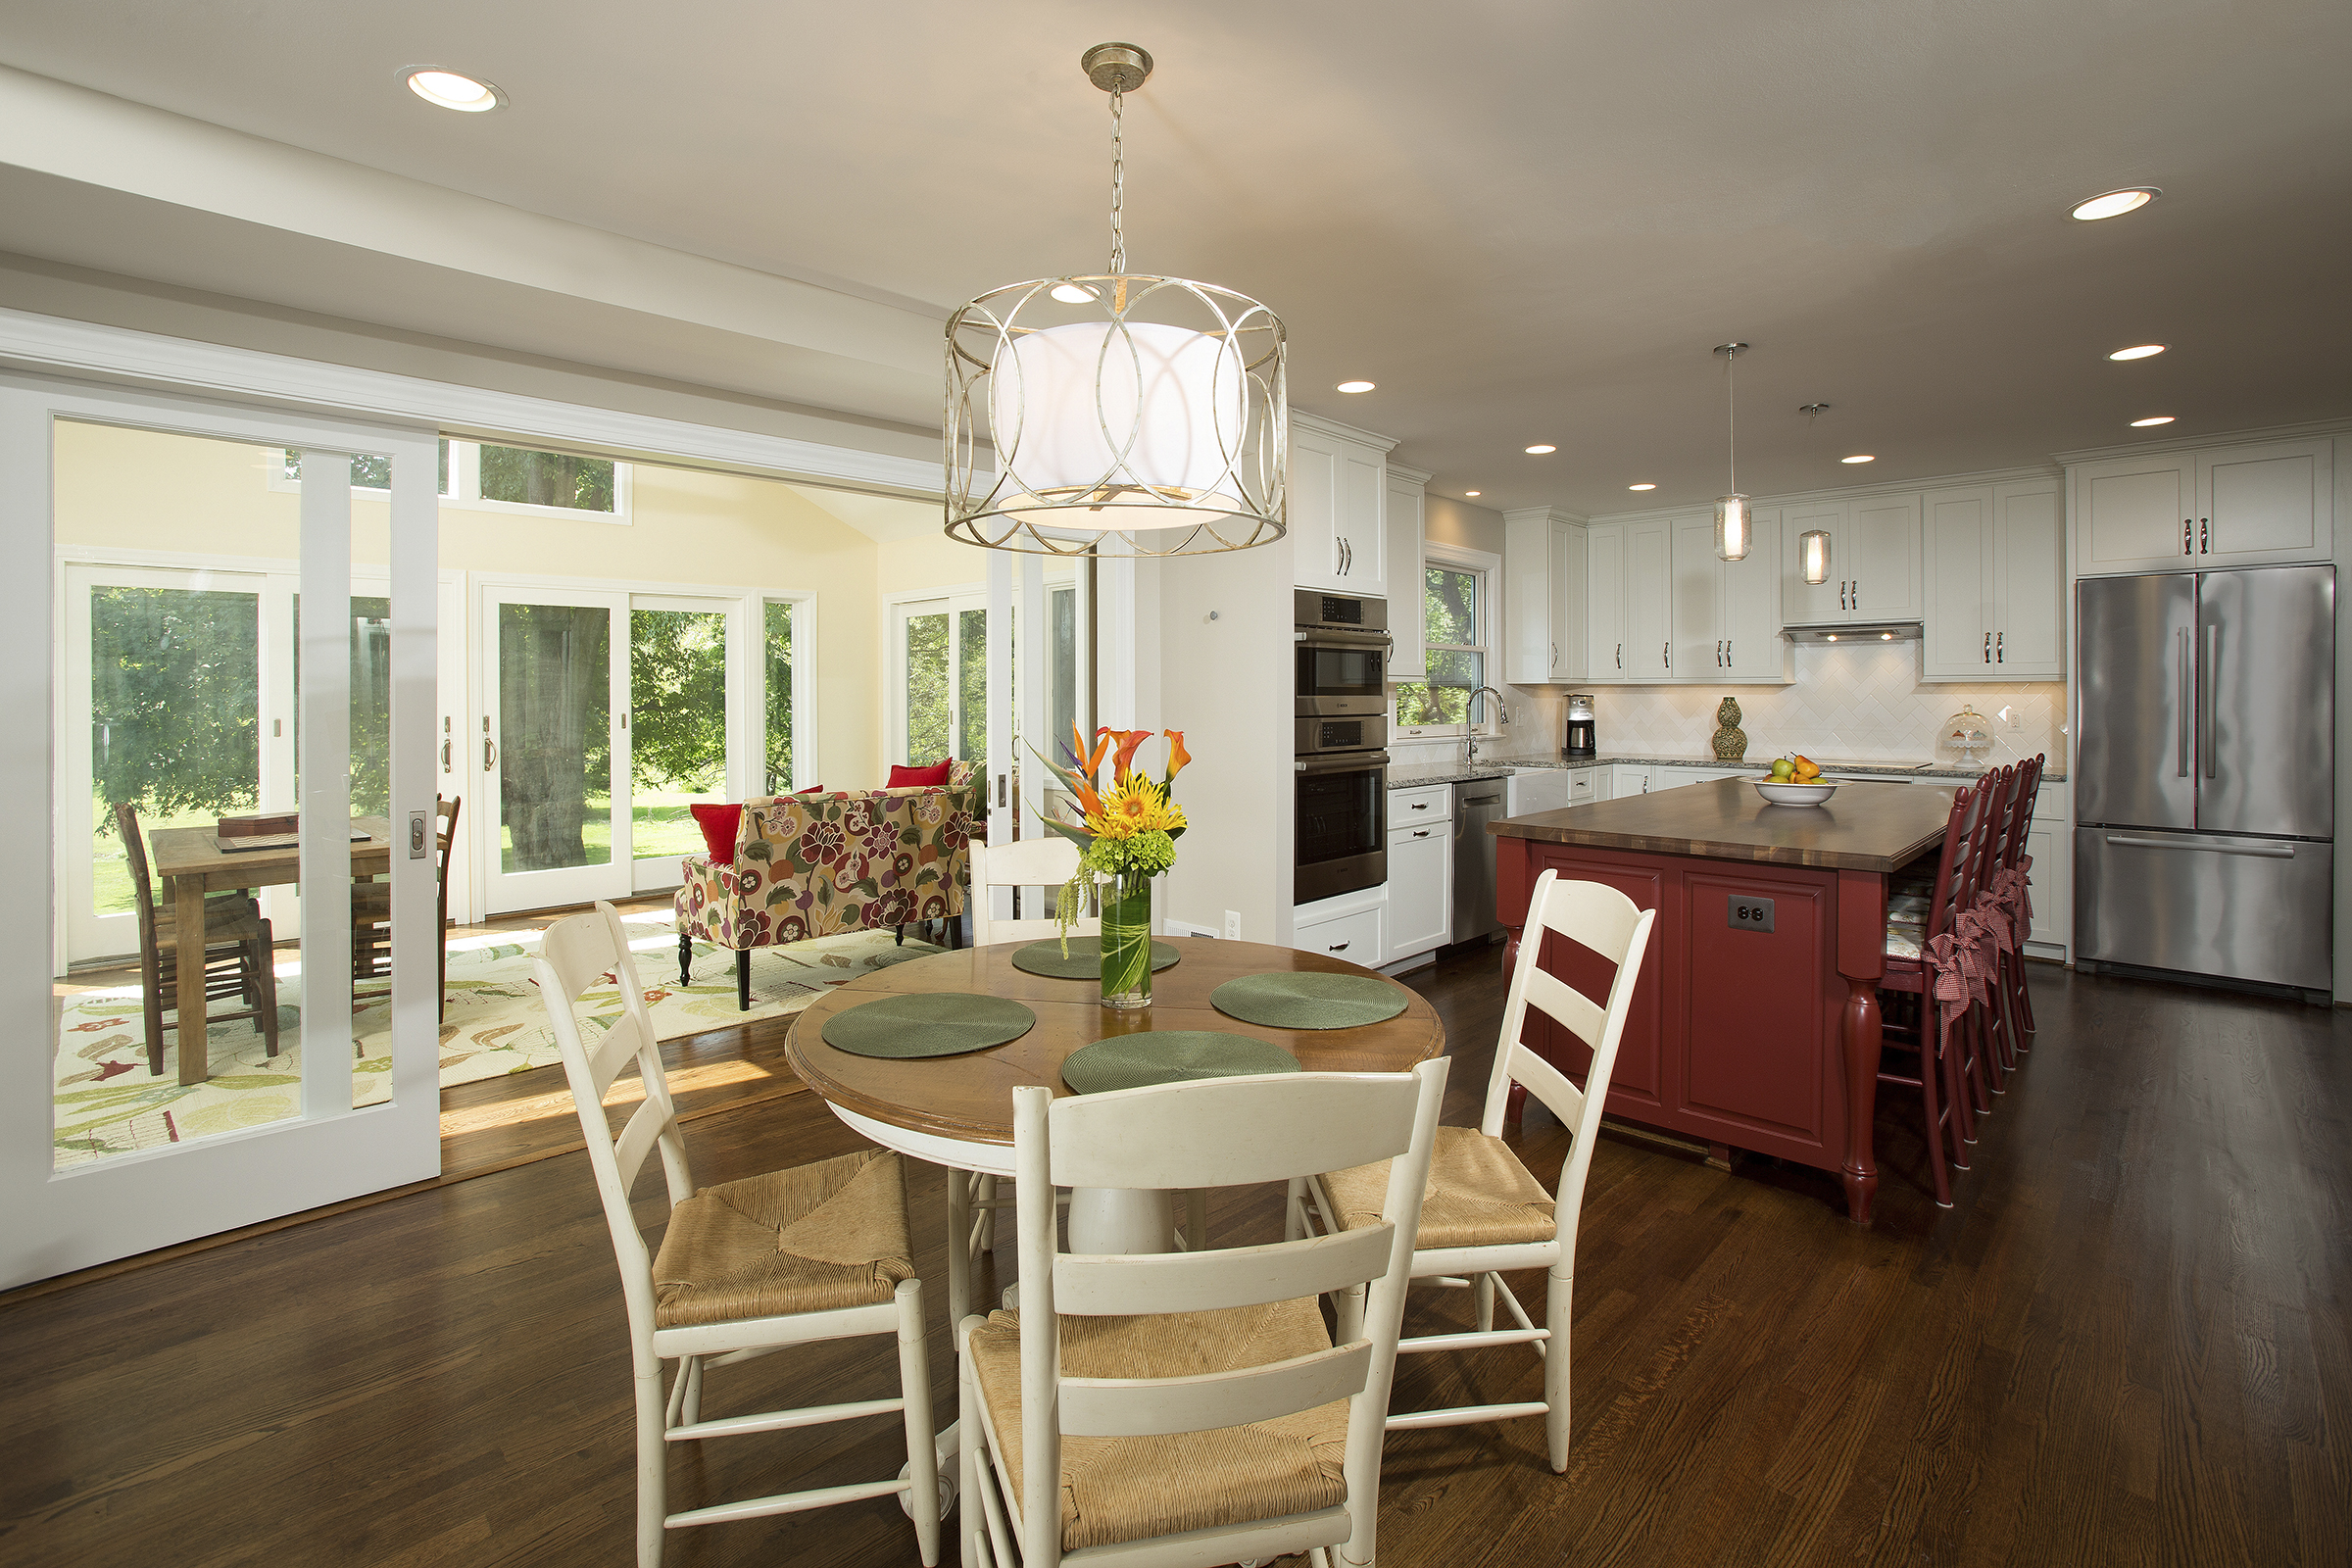 Great Falls Kitchen Renovation Emphasizes Family Interaction